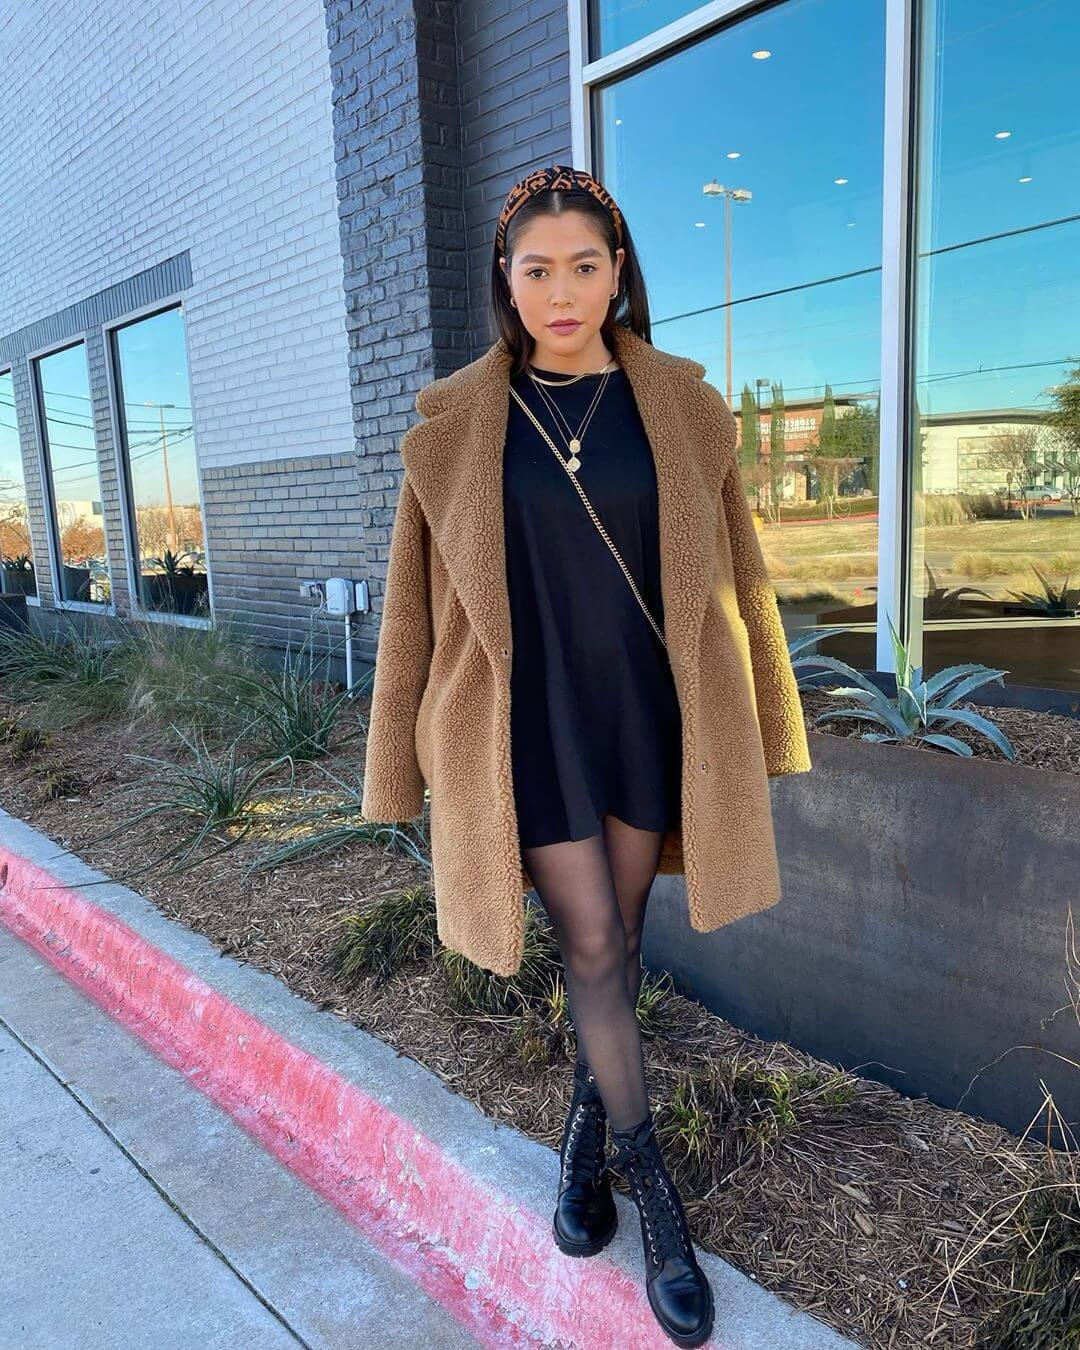 Pairing the little black tshirt dress with a fur coat